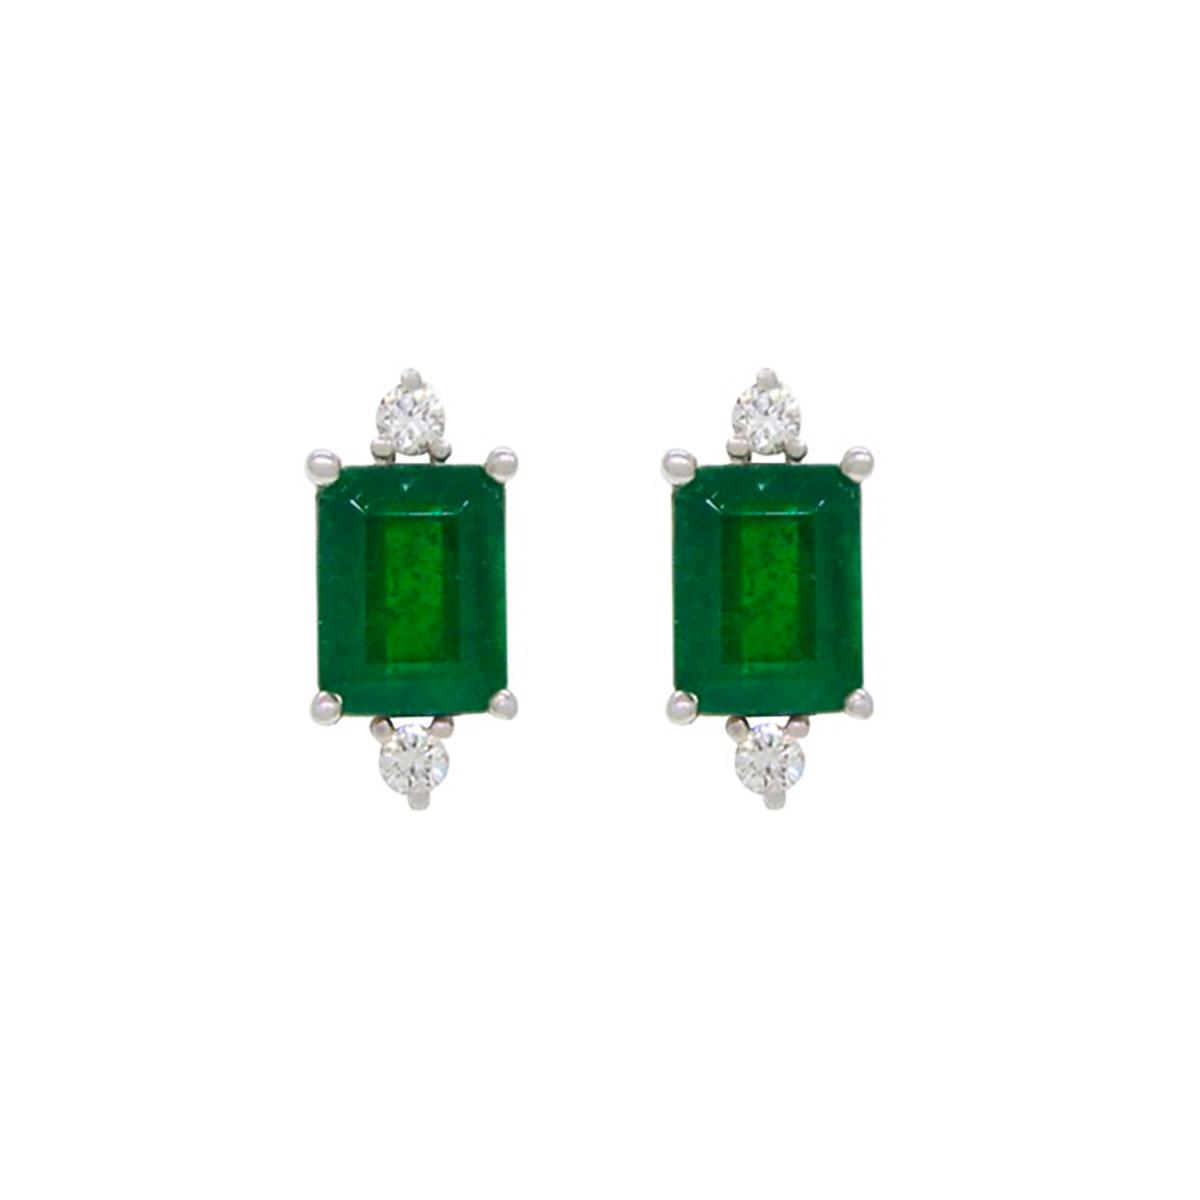 emerald-cut-natural-emeralds-set-in-18k-white-gold-stud-earrings-with-round-diamonds